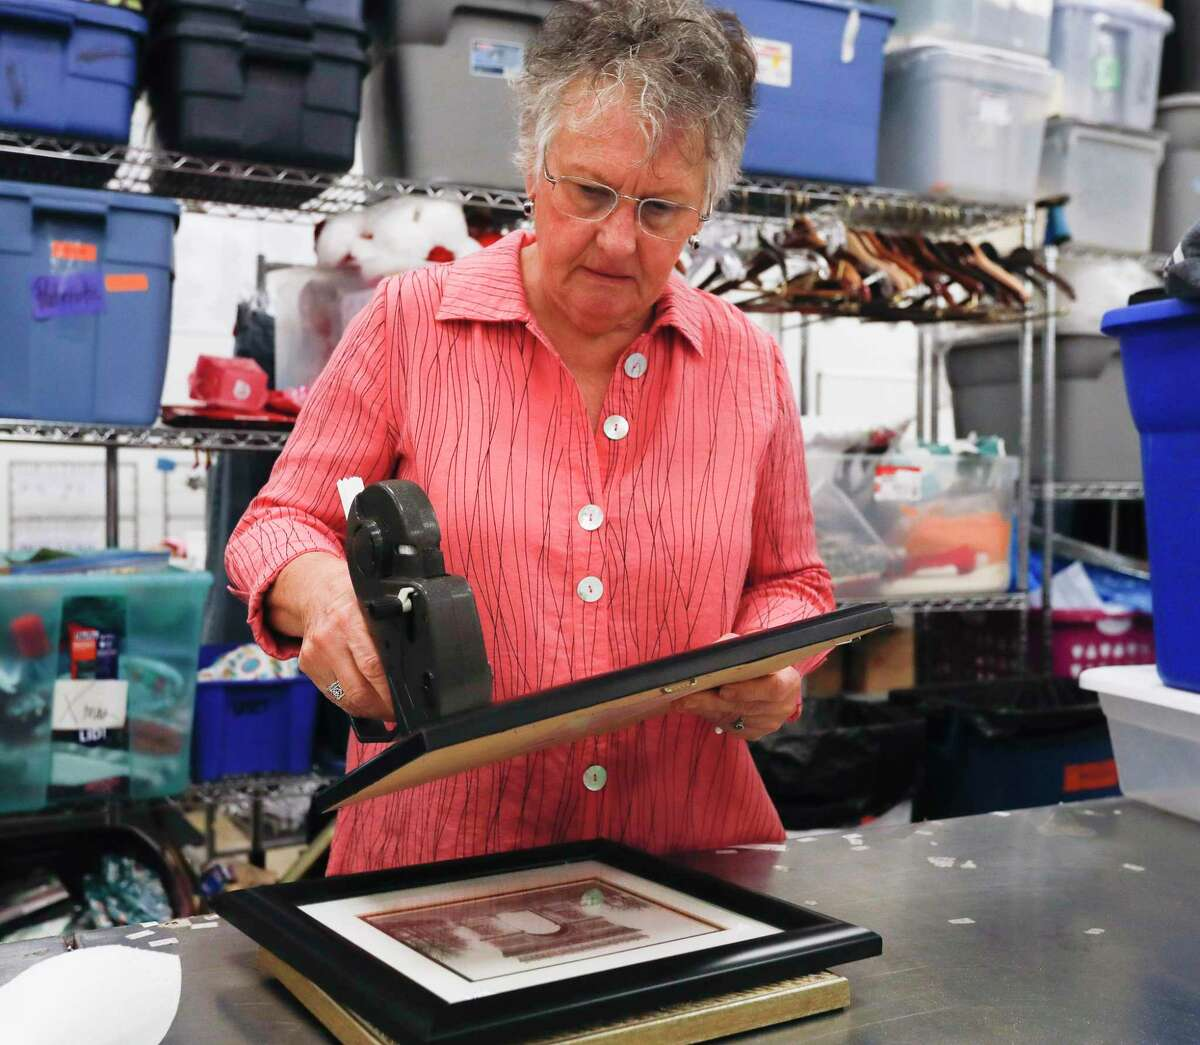 Karla Oubre, check recently donated items at the Interfaith of The Woodlands' Hand Me Up Shop, Thursday, Oct. 7, 2021, in Spring. The 10-year volunteer used various genealogy sites to help track down the families of several antique book donated to The Woodlands non-profit.